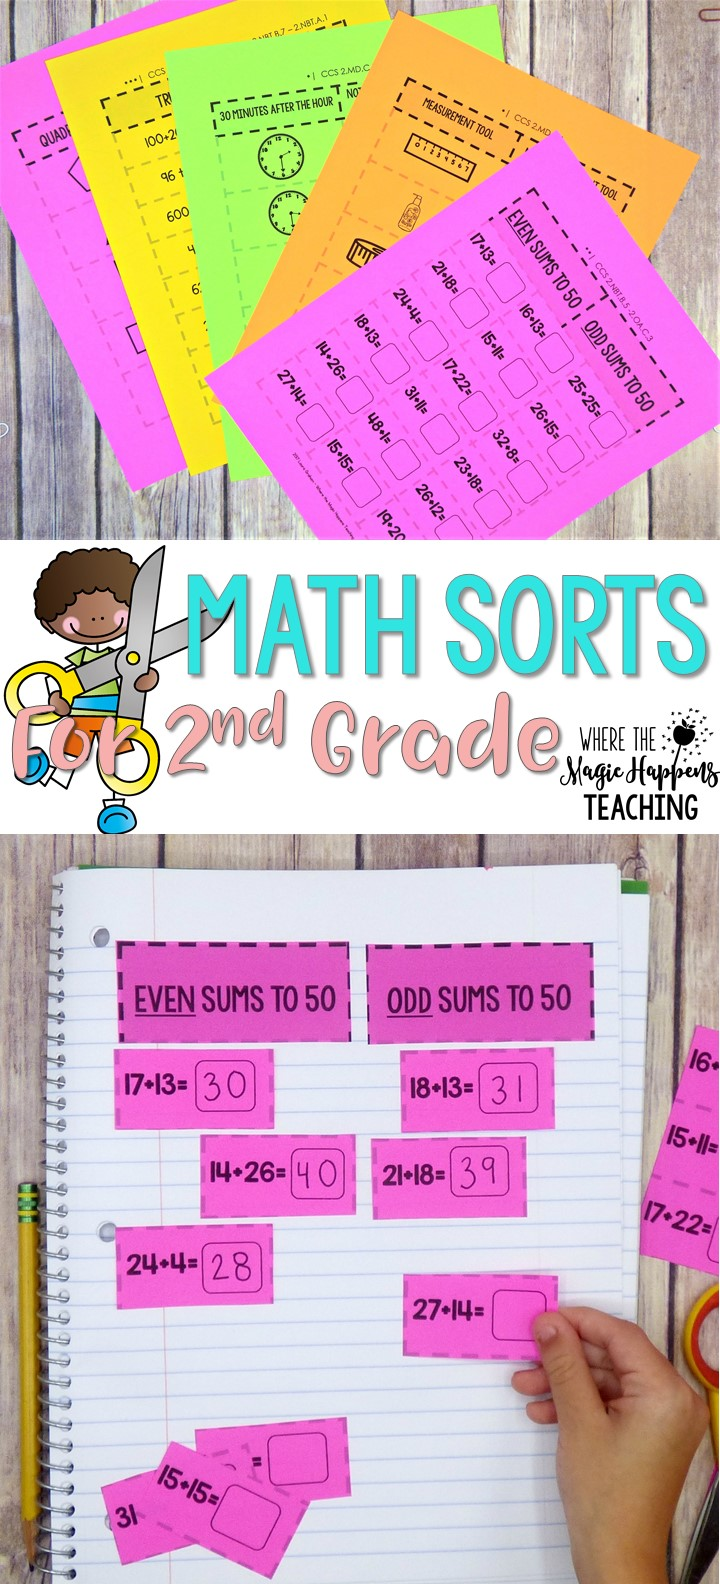 small resolution of Math Sorts for 2nd Grade - Where the Magic Happens